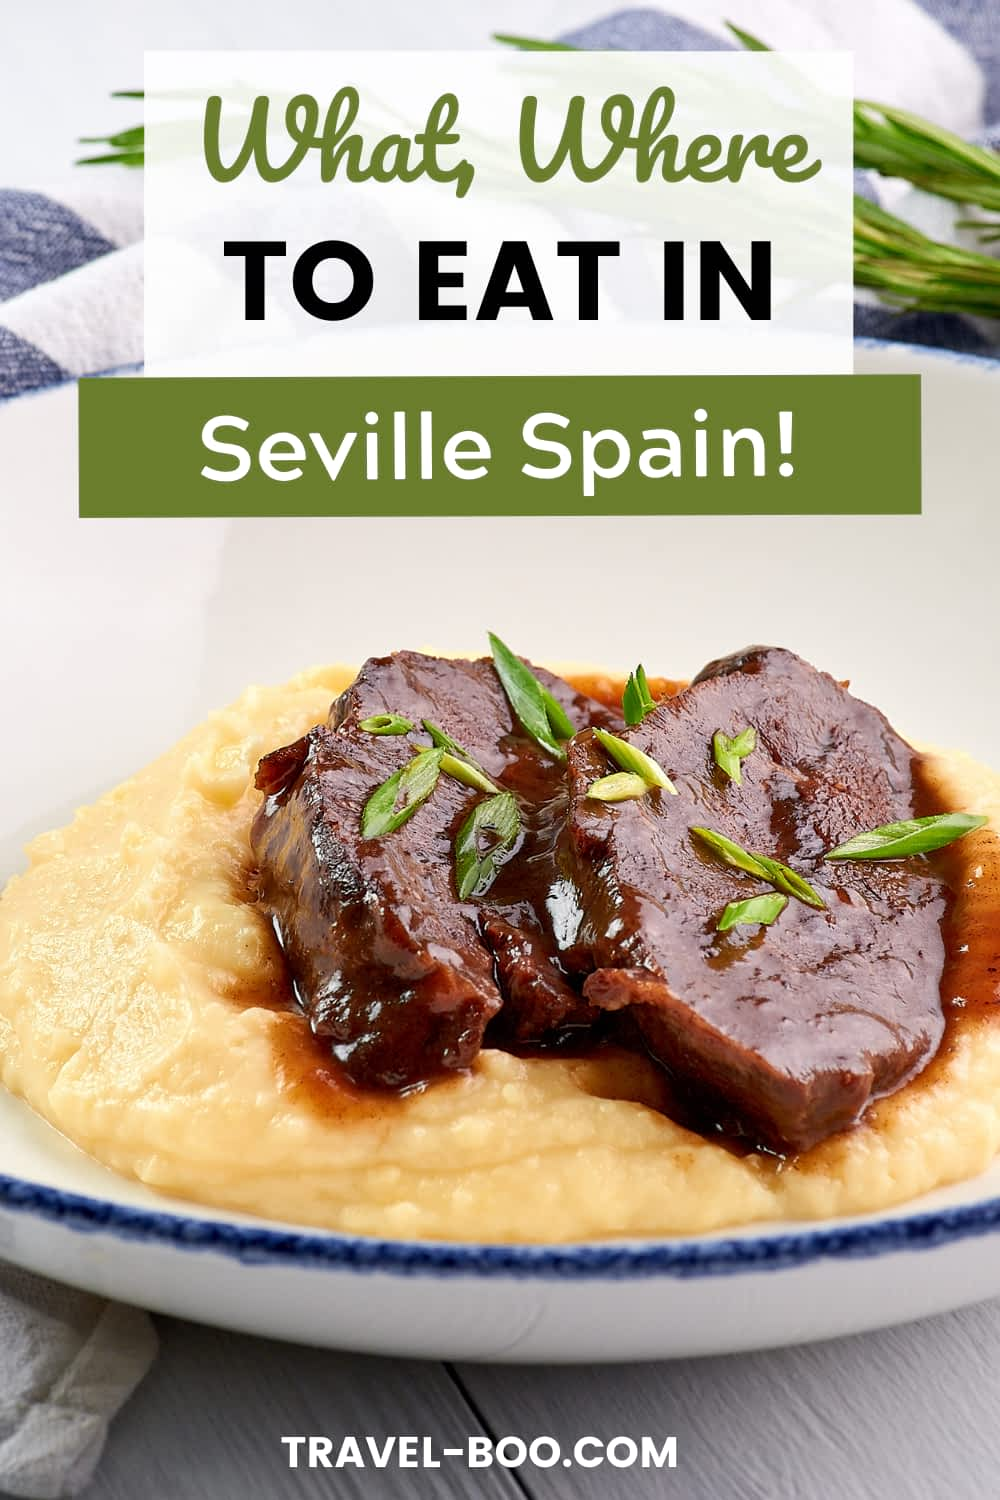 Seville Food Guide - What & Where to Eat in Seville Spain! Seville Travel, What to eat in Seville, Seville Spain, Seville Food Guide, Seville Travel Tips, Seville Itinerary